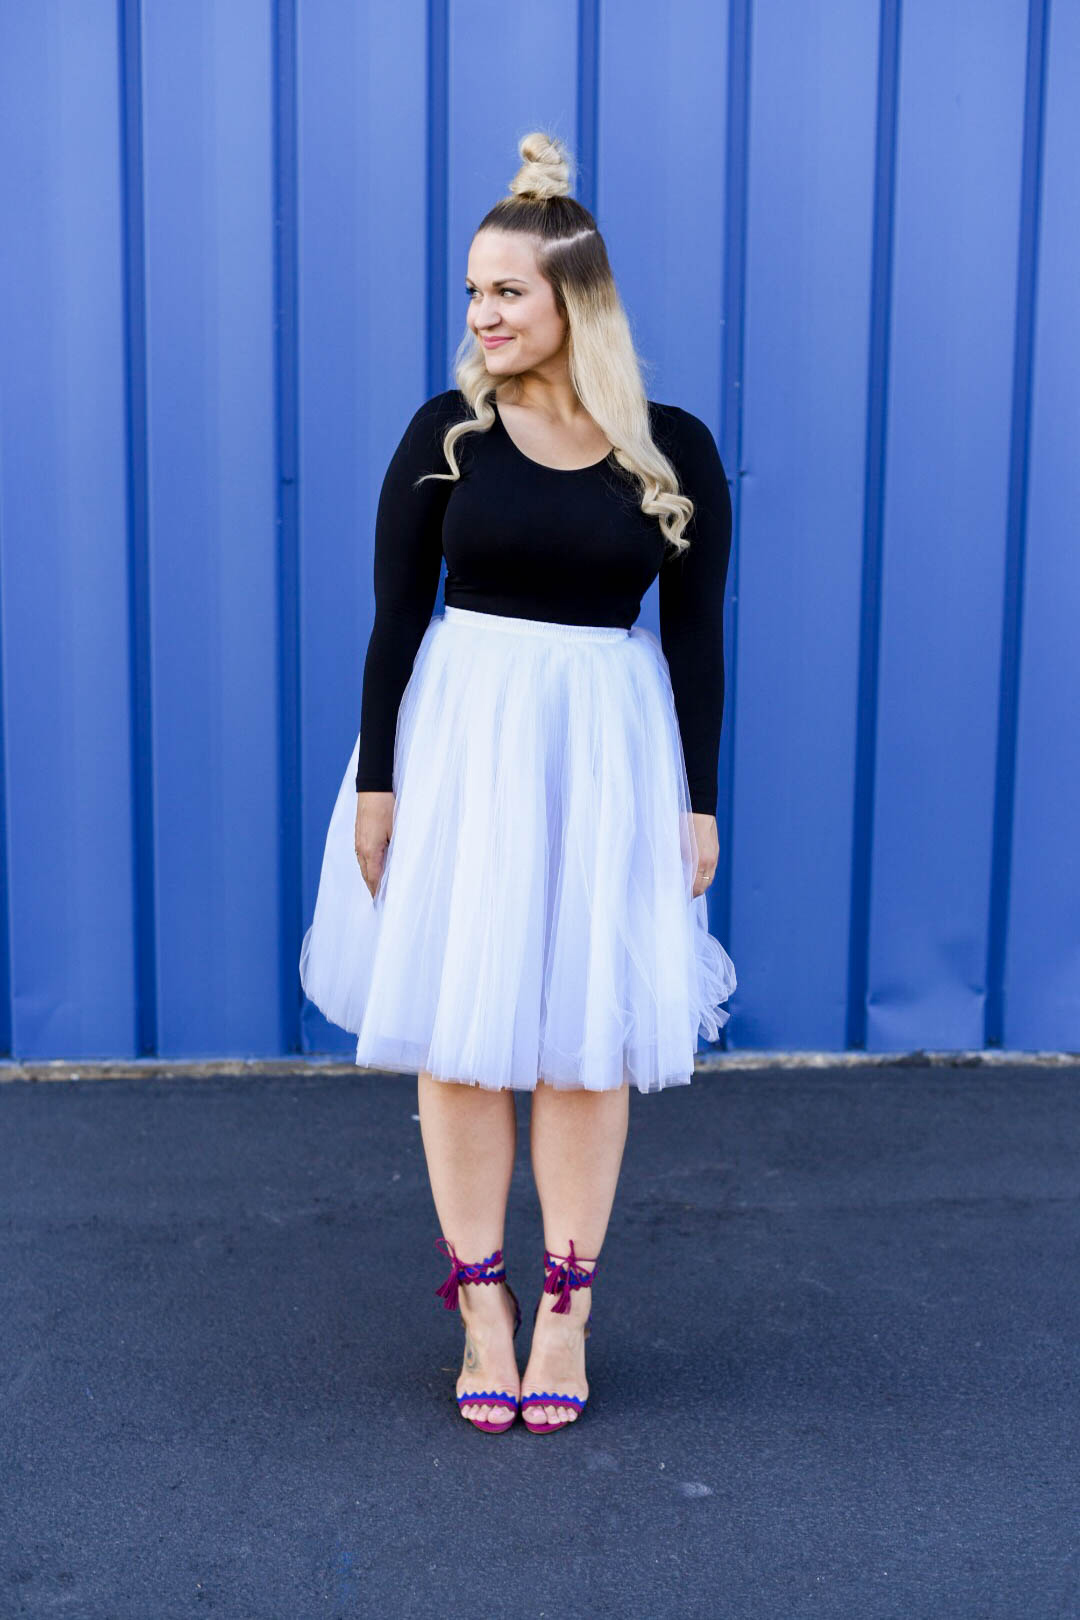 Tulle Skirt Birthday Outfit